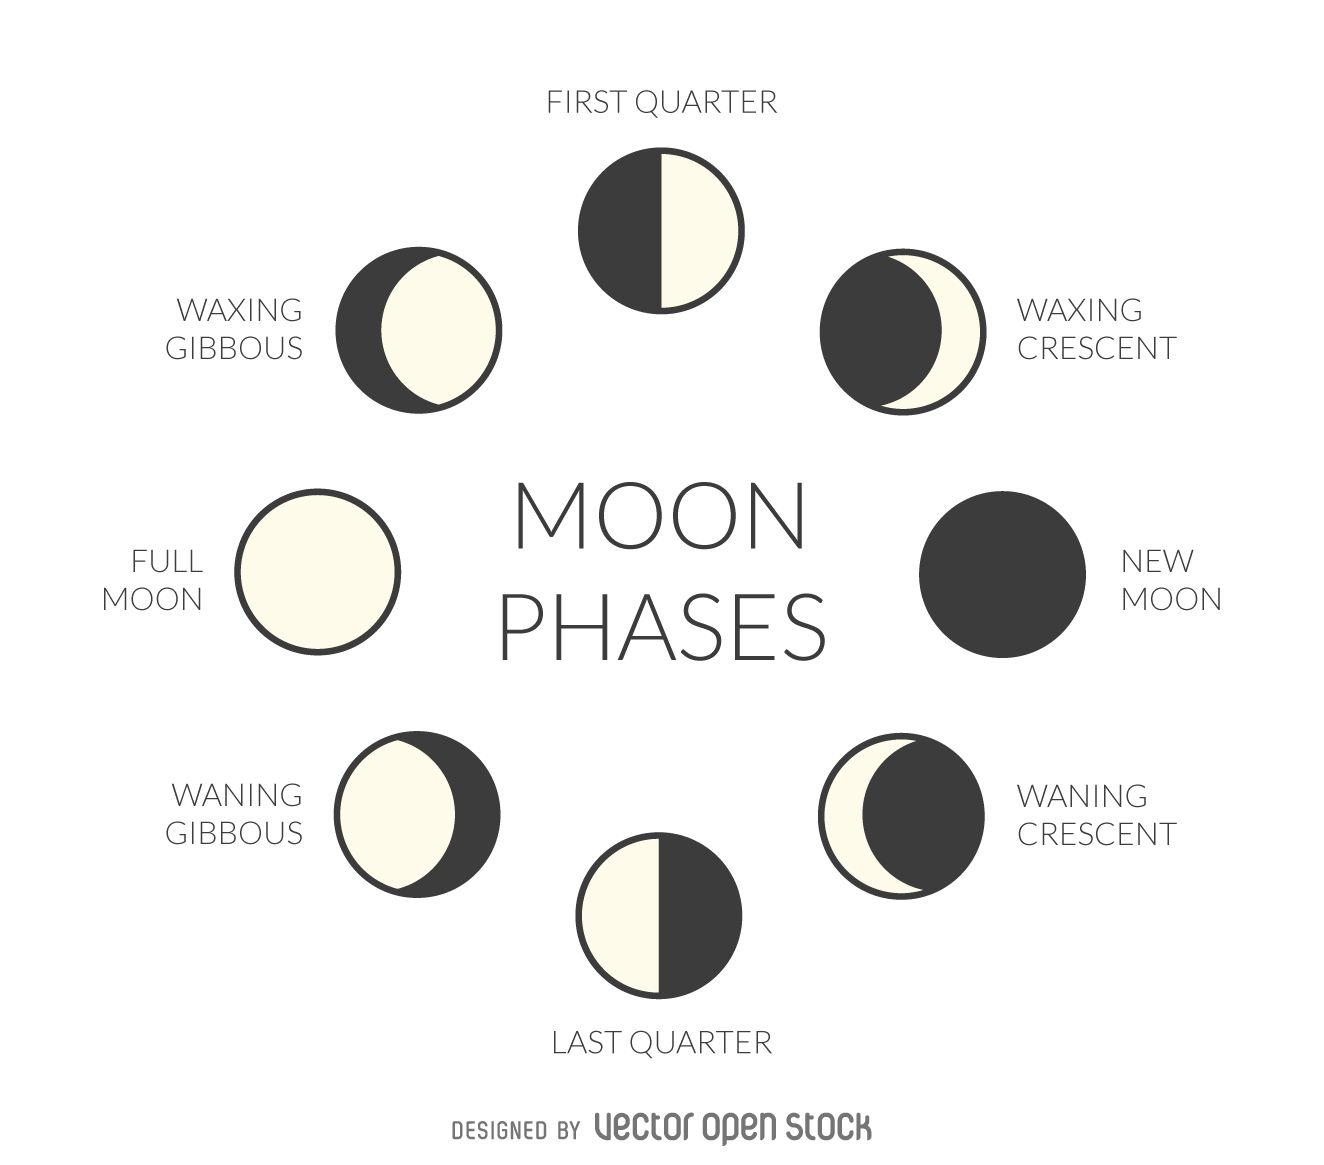 How To Draw A Phase Diagram Viper Smart Start Wiring Illustration Featuring The Phases Of Moon Design